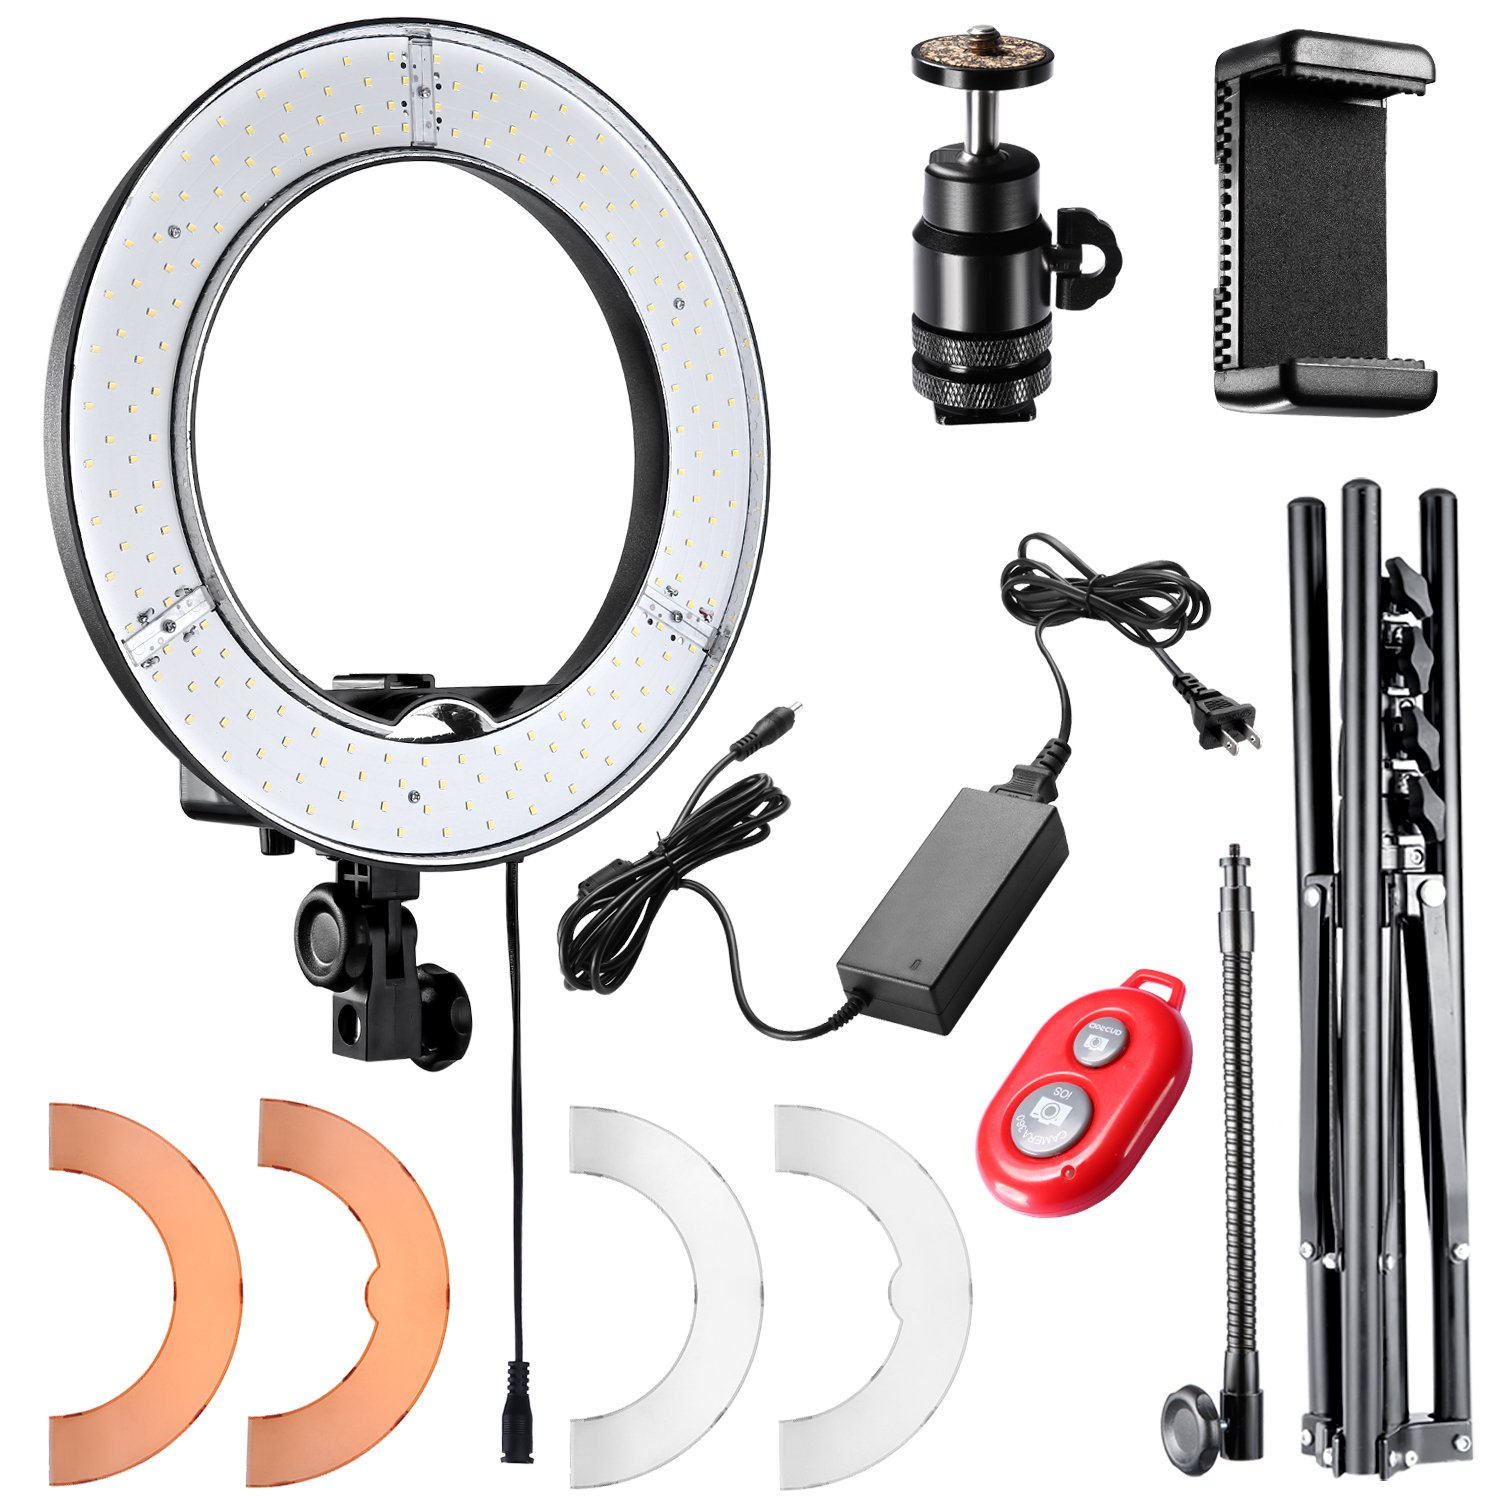 Neewer Camera Photo Video Lightning Kit: 18 inches/48 centimeters Outer 55W 5500K Dimmable LED Ring Light, Light Stand, Bluetooth Receiver for Smartphone, YouTube, Vine Self-Portrait Video Shooting 10088612@@##1